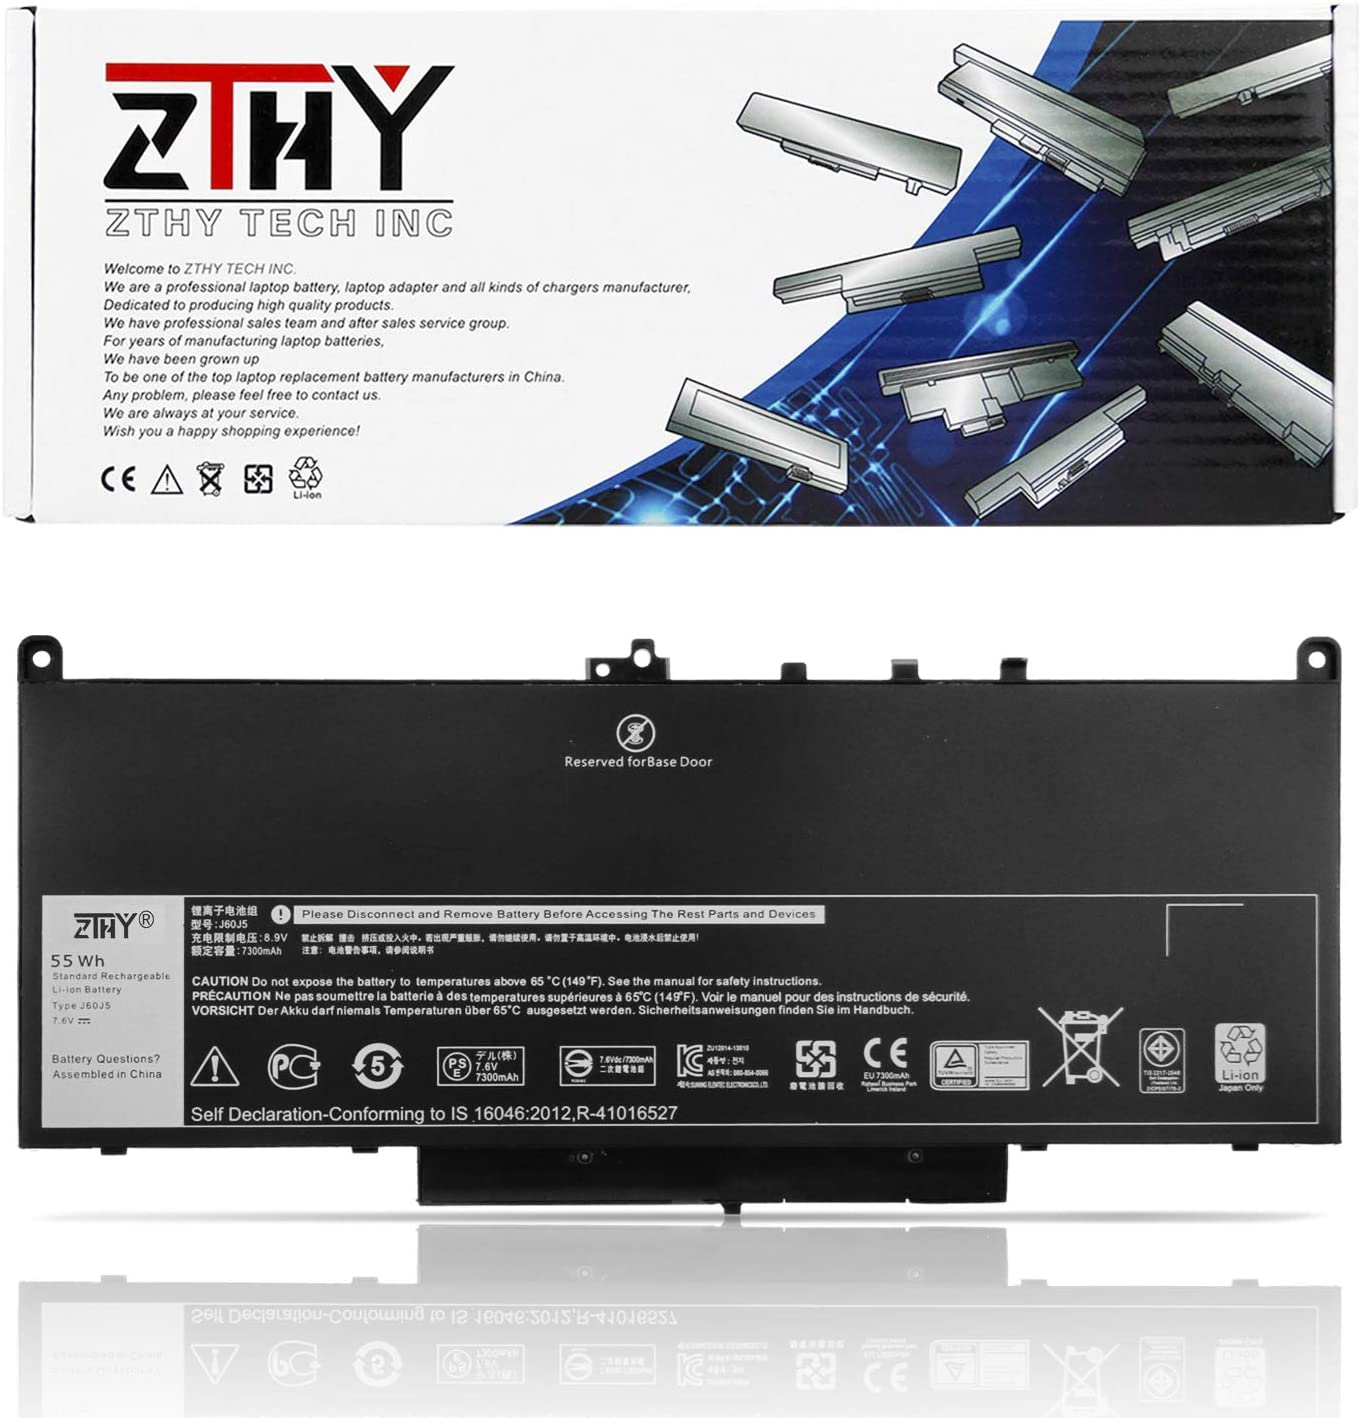 ZTHY J60J5 Primary Laptop Battery Replacement for Dell Latitude E7270 P26S001 E7470 P61G001 Series Notebook R1V85 451-BBSX 451-BBSY 451-BBSU MC34Y 242WD PDNM2 7.6V 55WHr 4Cell